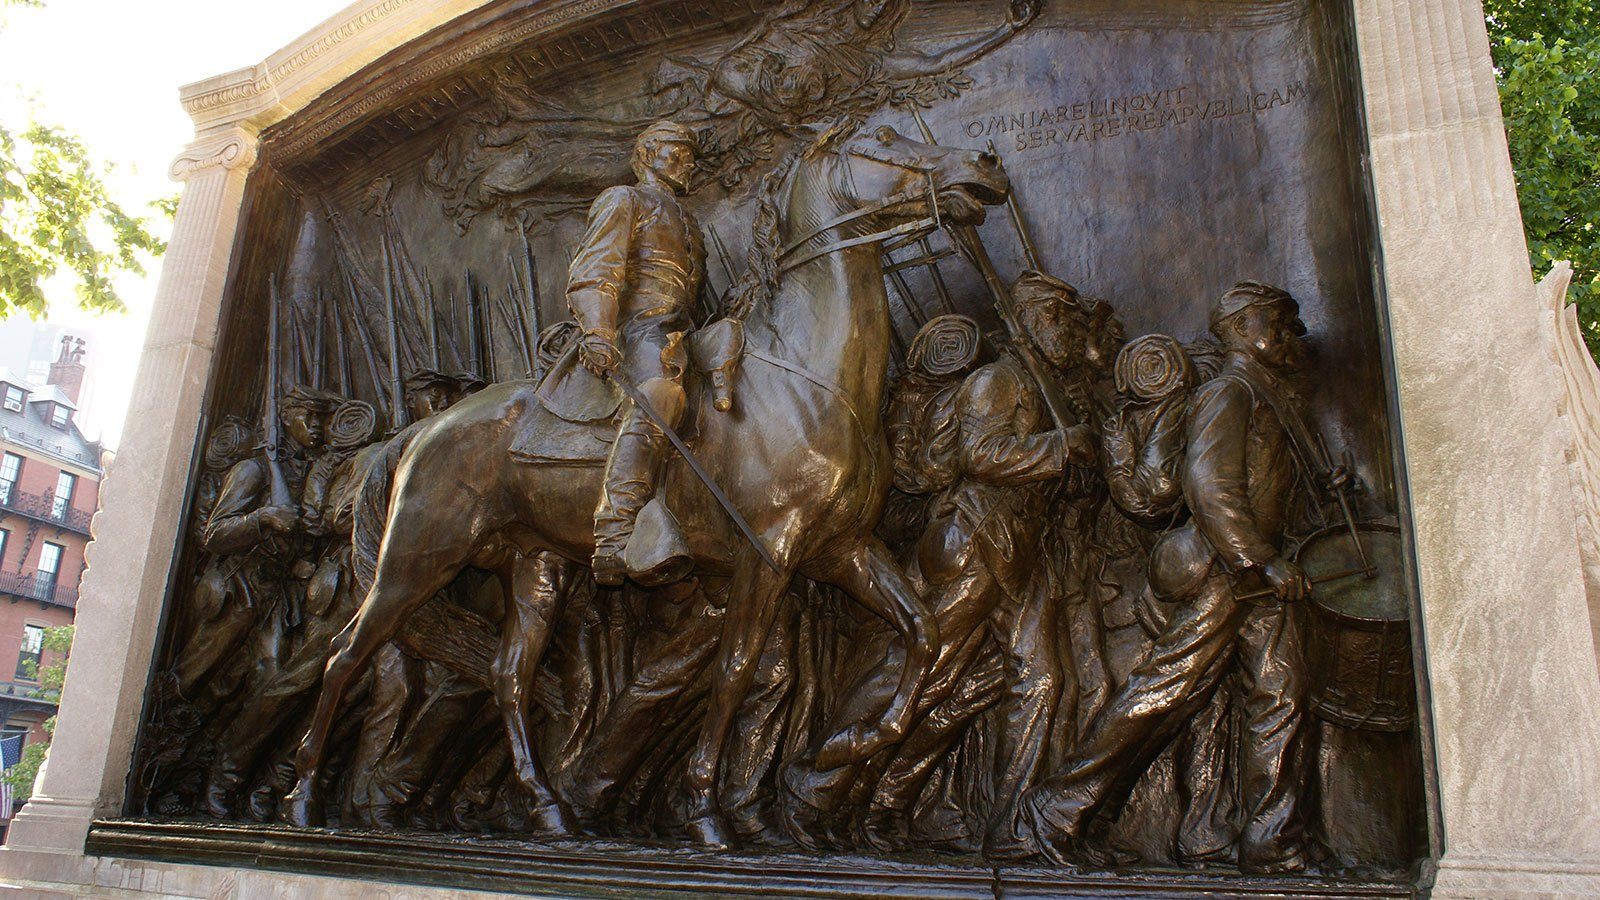 Memorial to Robert Gould Shaw and the Fifty-Fourth Massachusetts Regiment